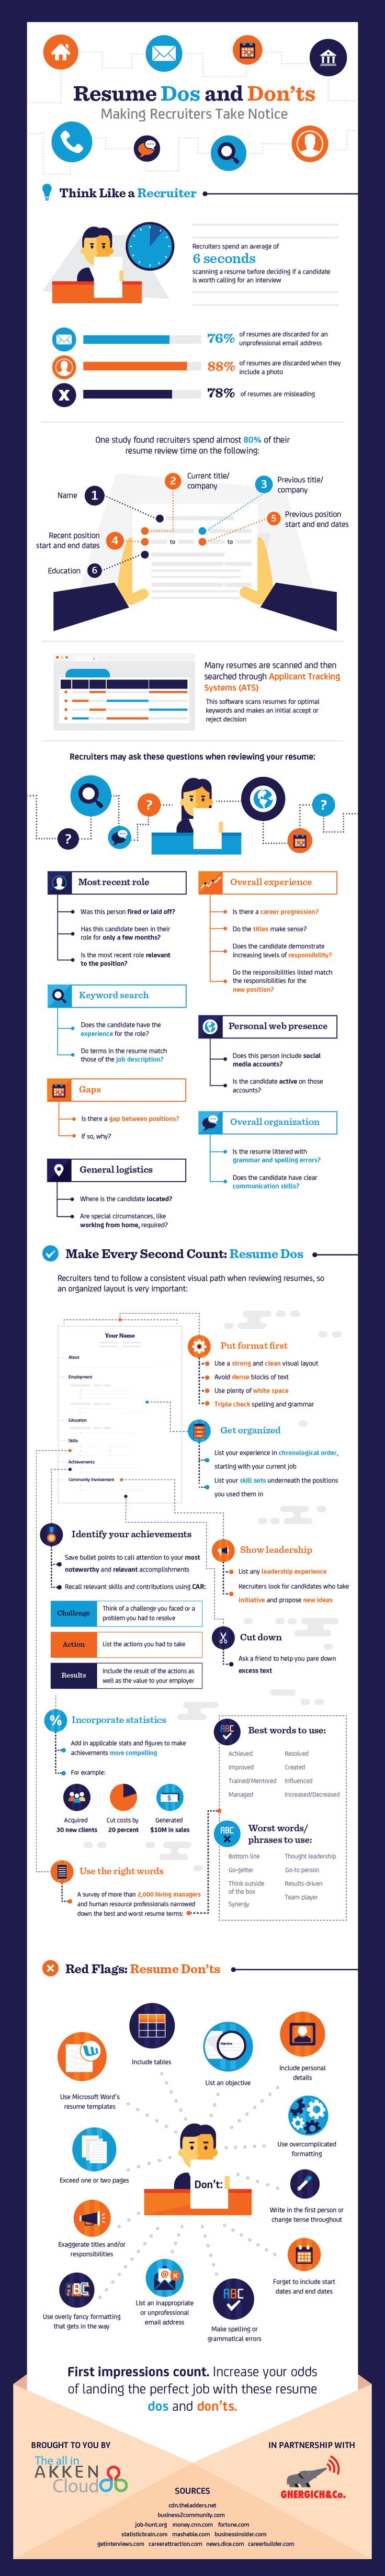 Resume Dos and Don'ts: Making Recruiters Take Notice (Infographic) | iBrandStudio